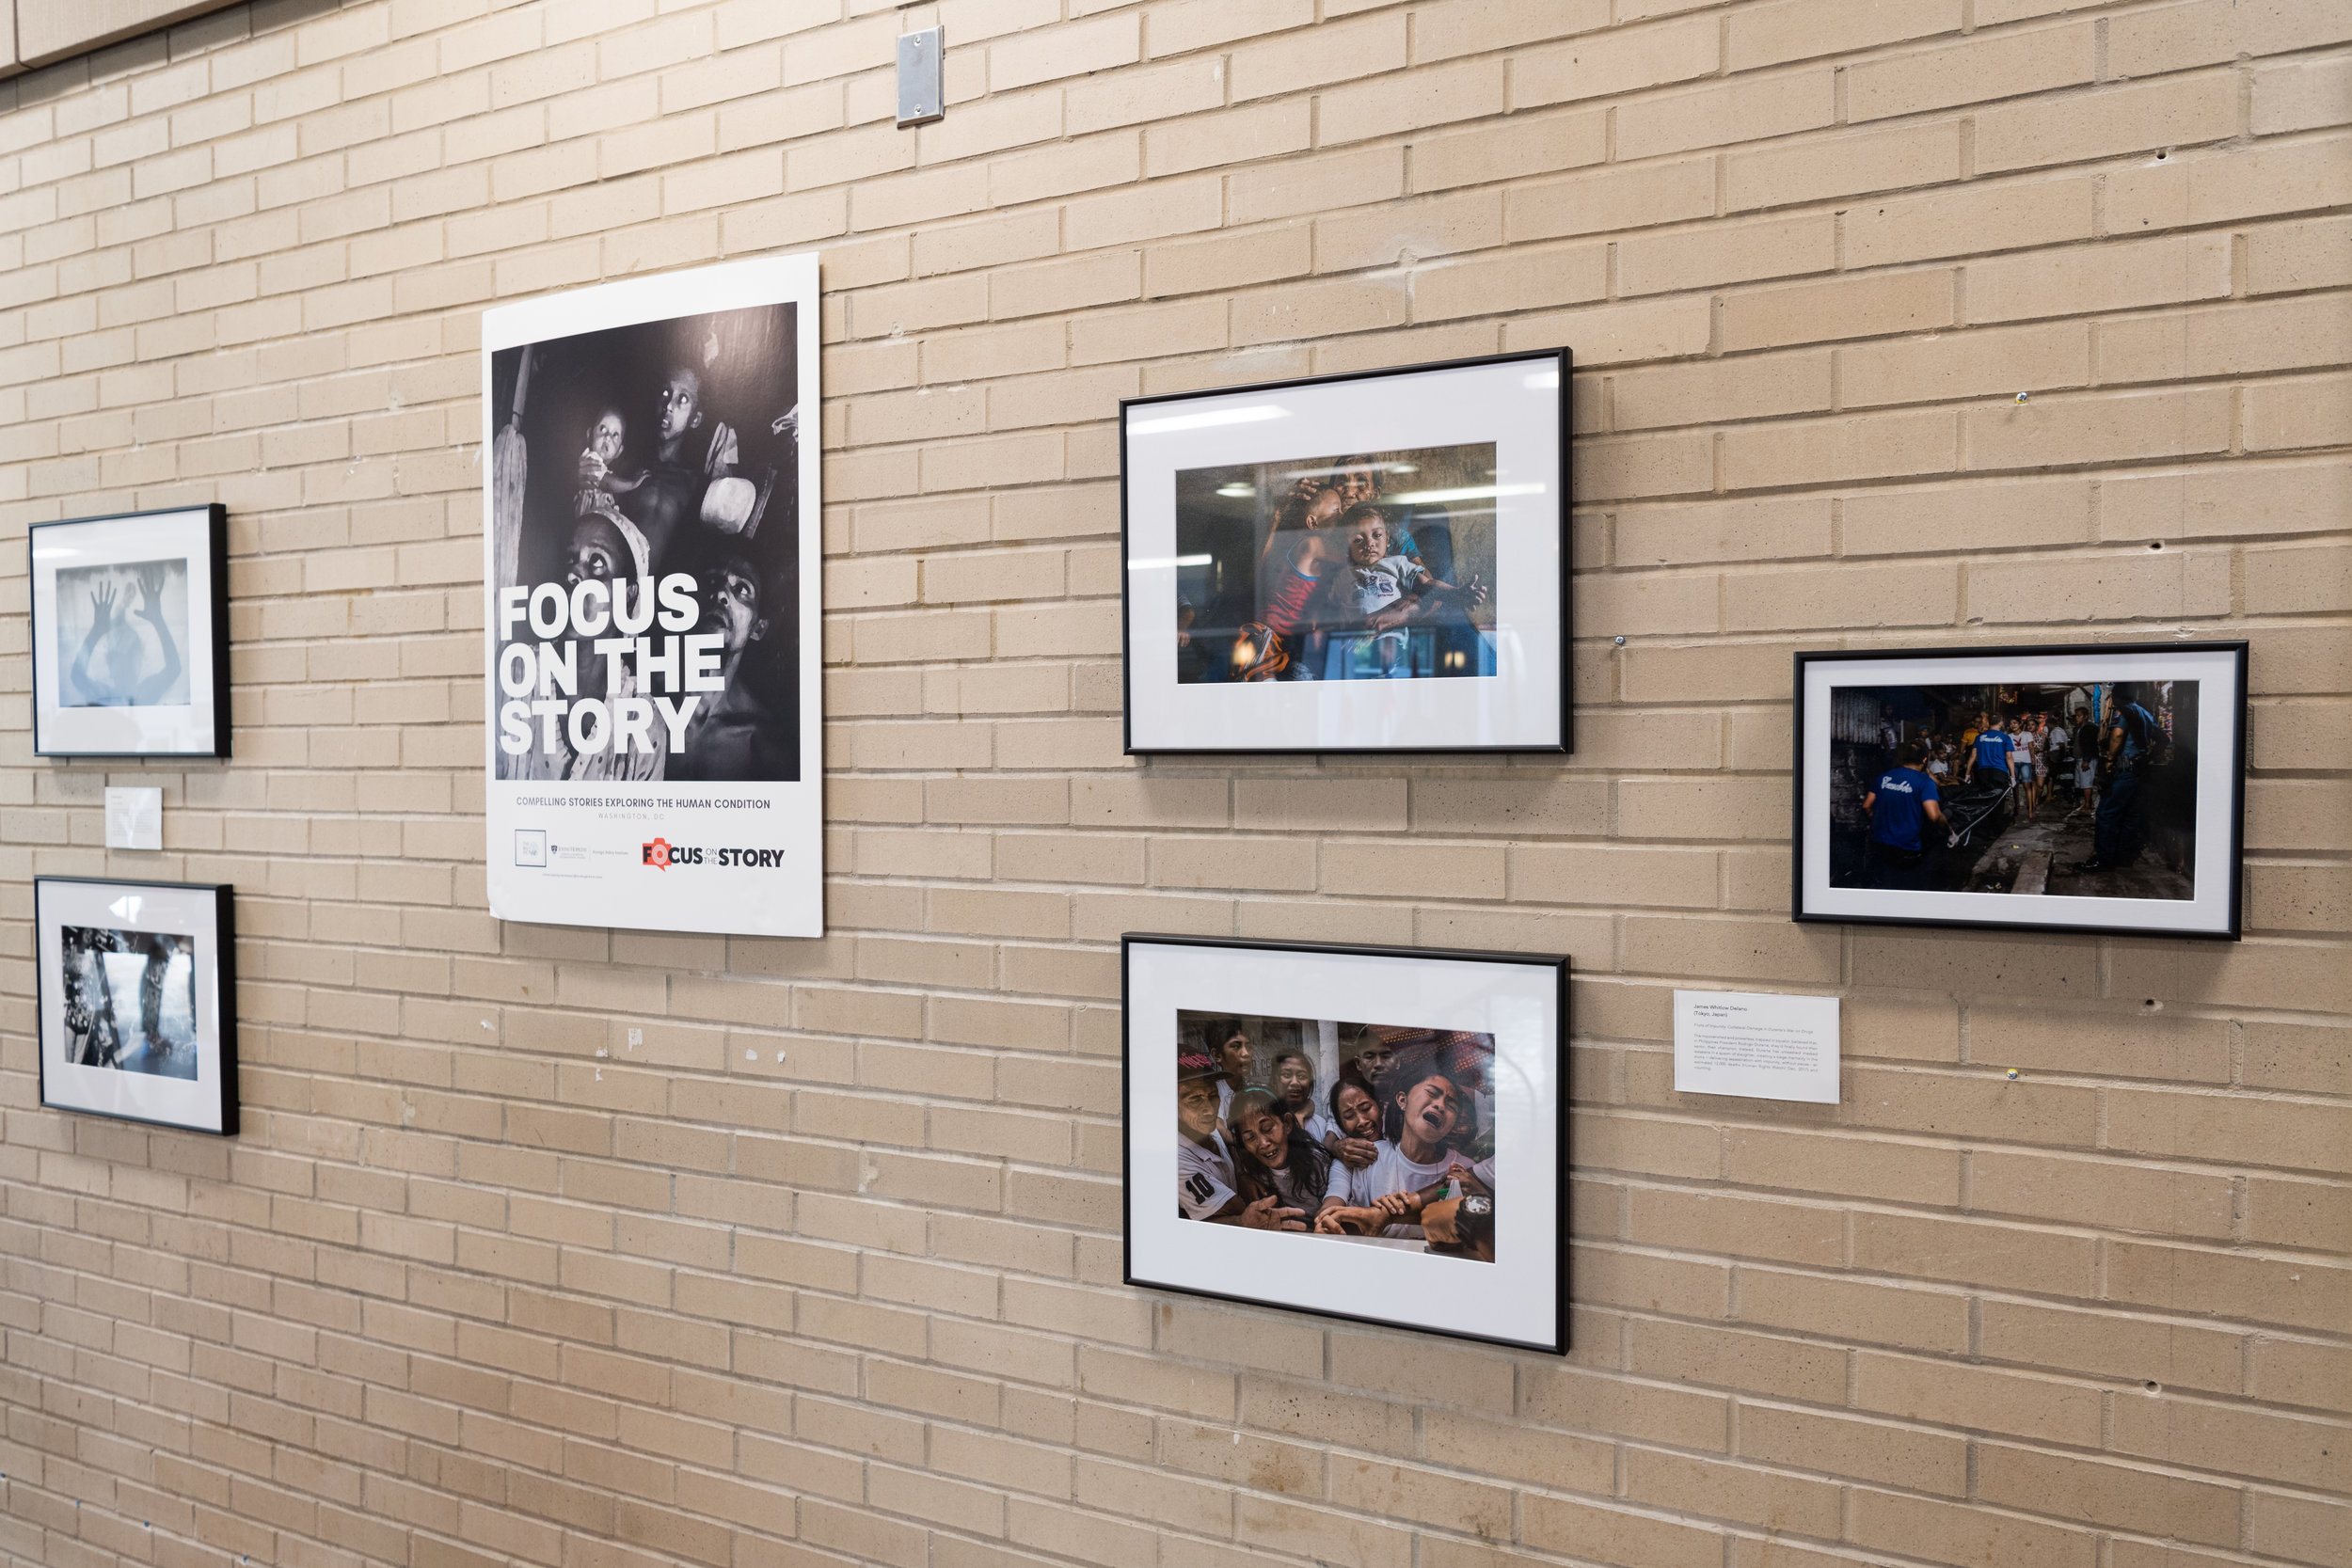 The event also featured photographs by James Whitlow Delano and the winners of the Focus on the Story Awards